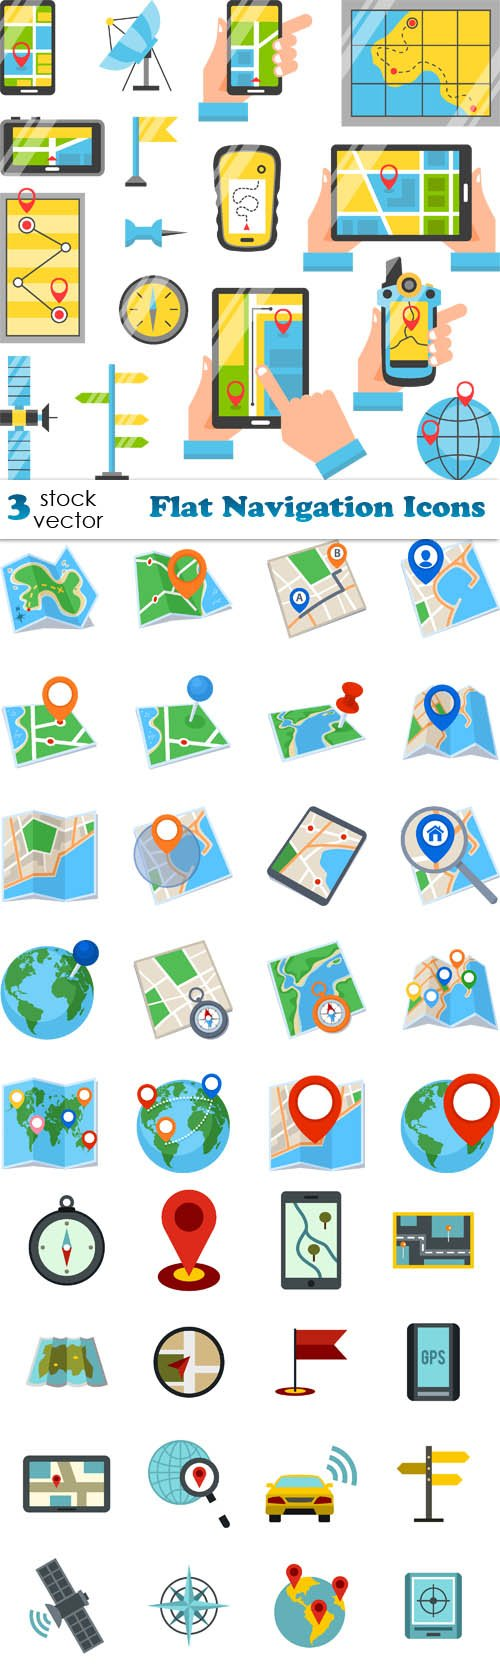 Vectors - Flat Navigation Icons